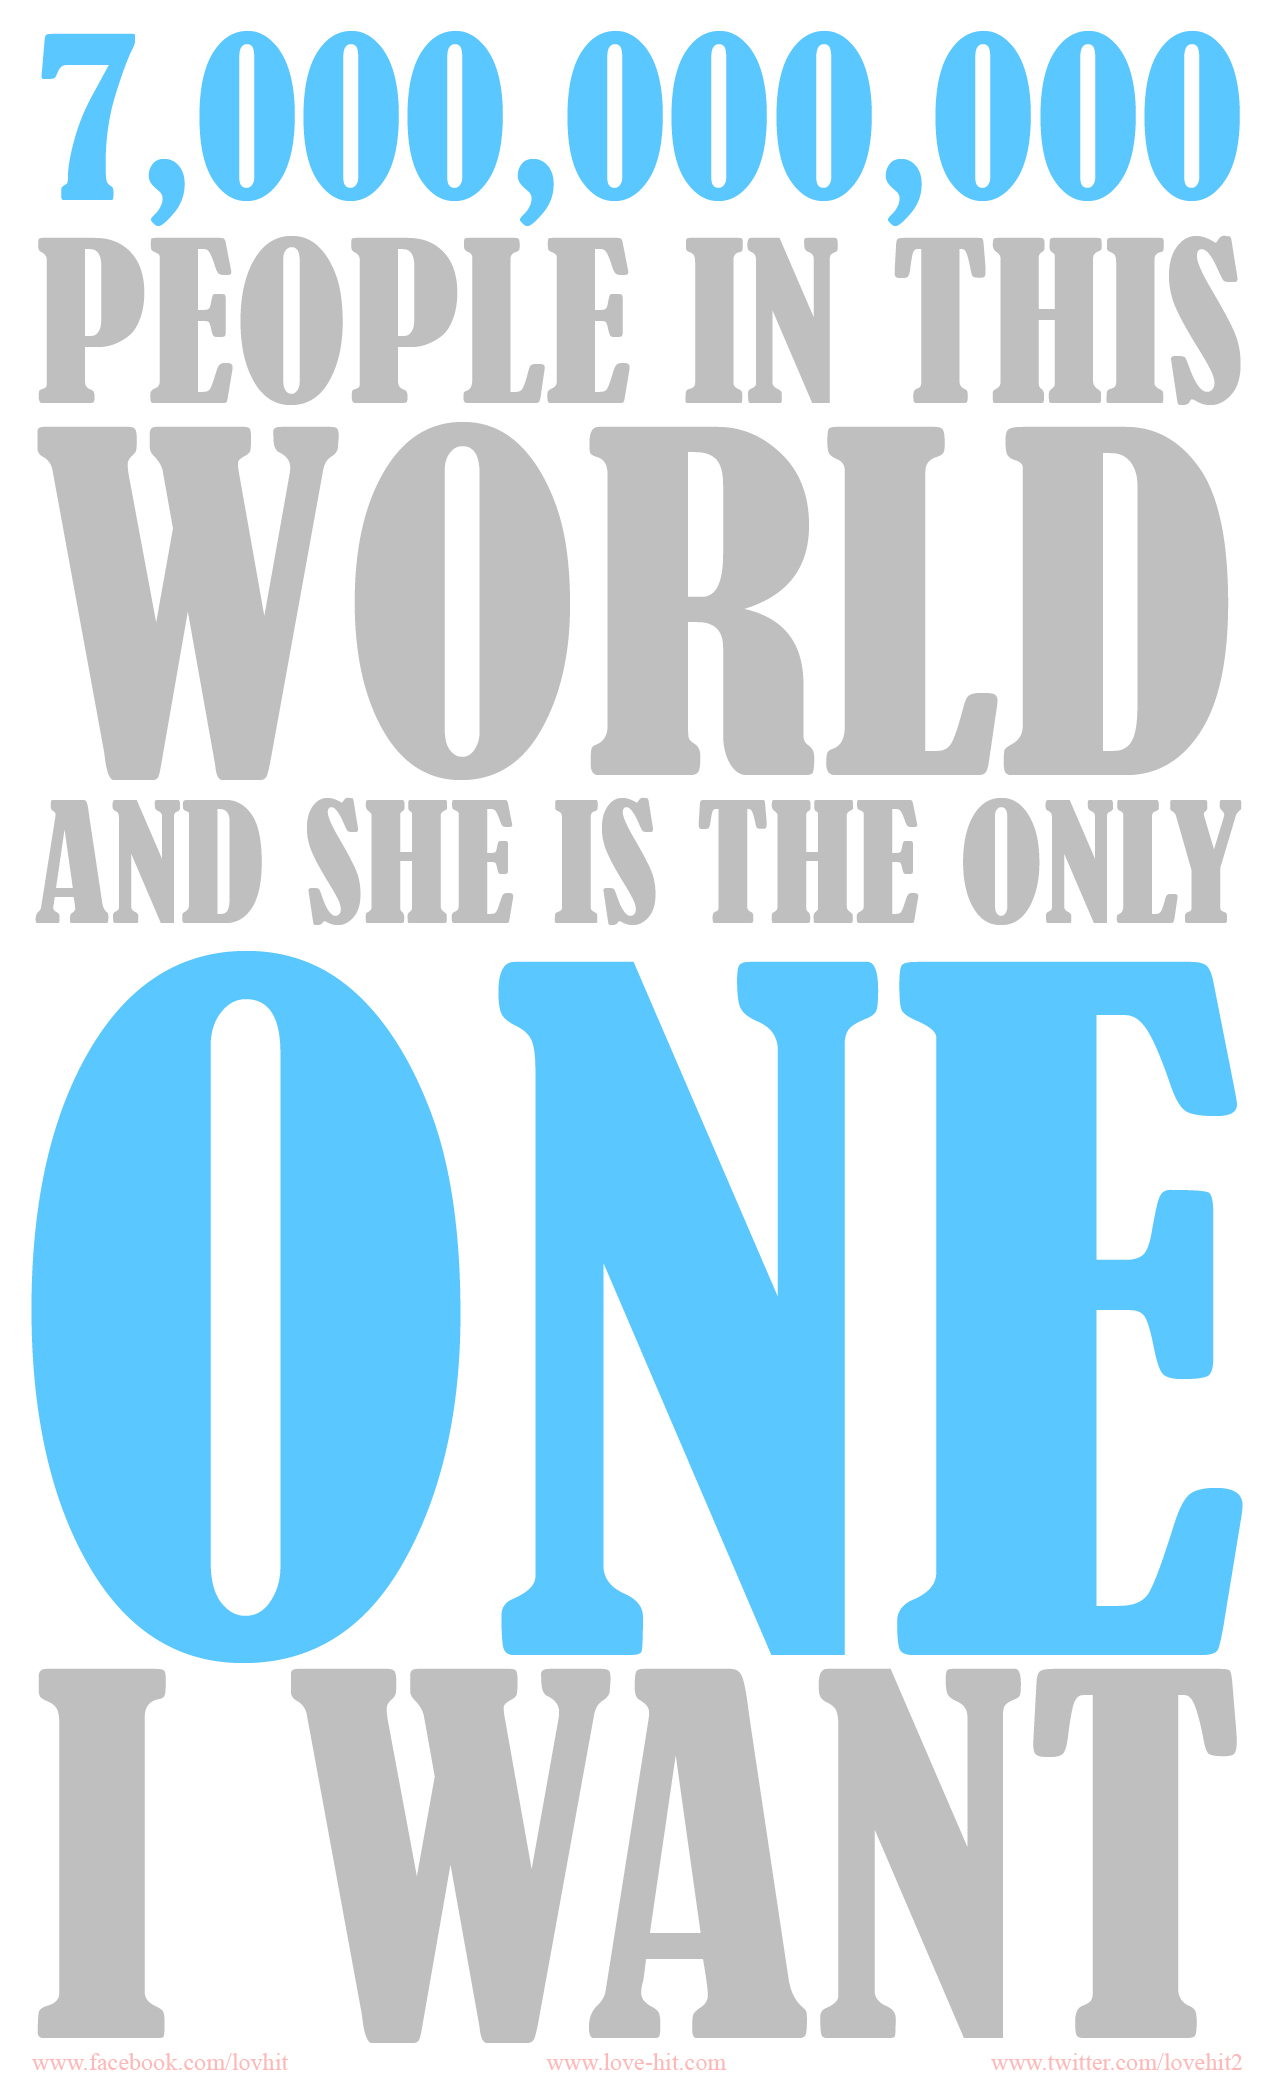 She is the one I want